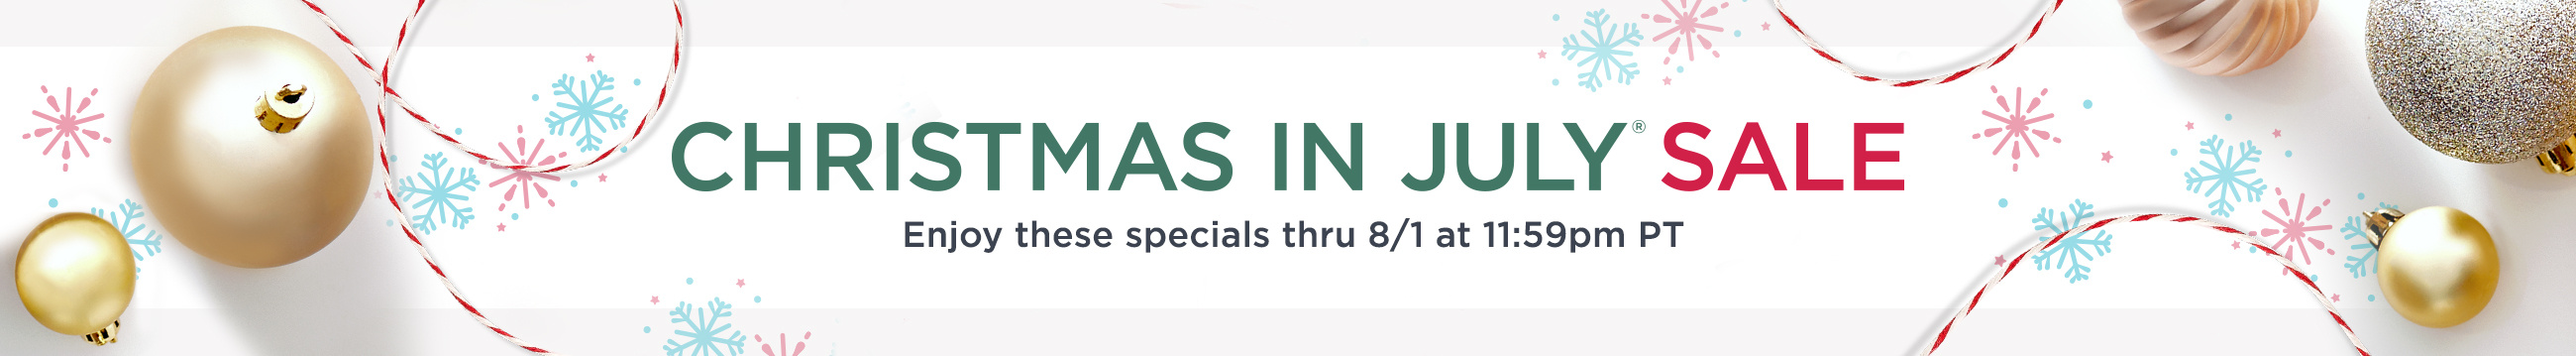 Christmas in July® Sale  Enjoy these specials thru 8/1 at 11:59pm PT